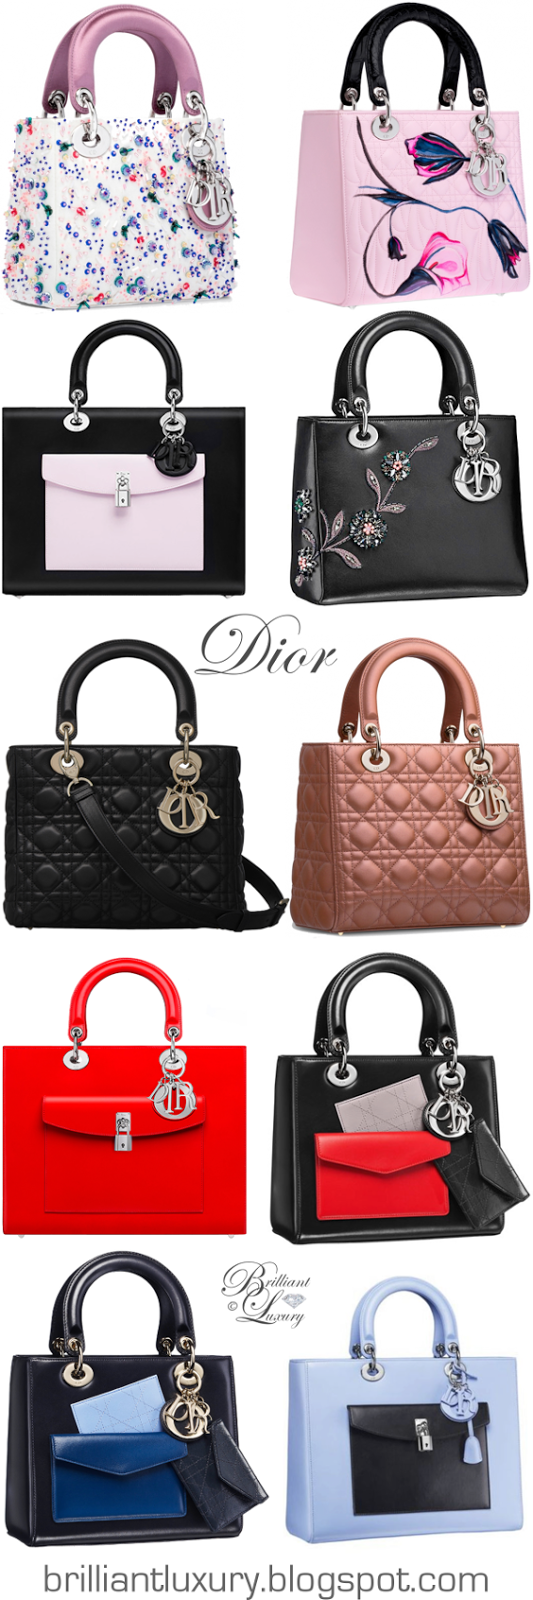 Brilliant Luxury ♦ Dior 'Lady Dior' Bag Collection